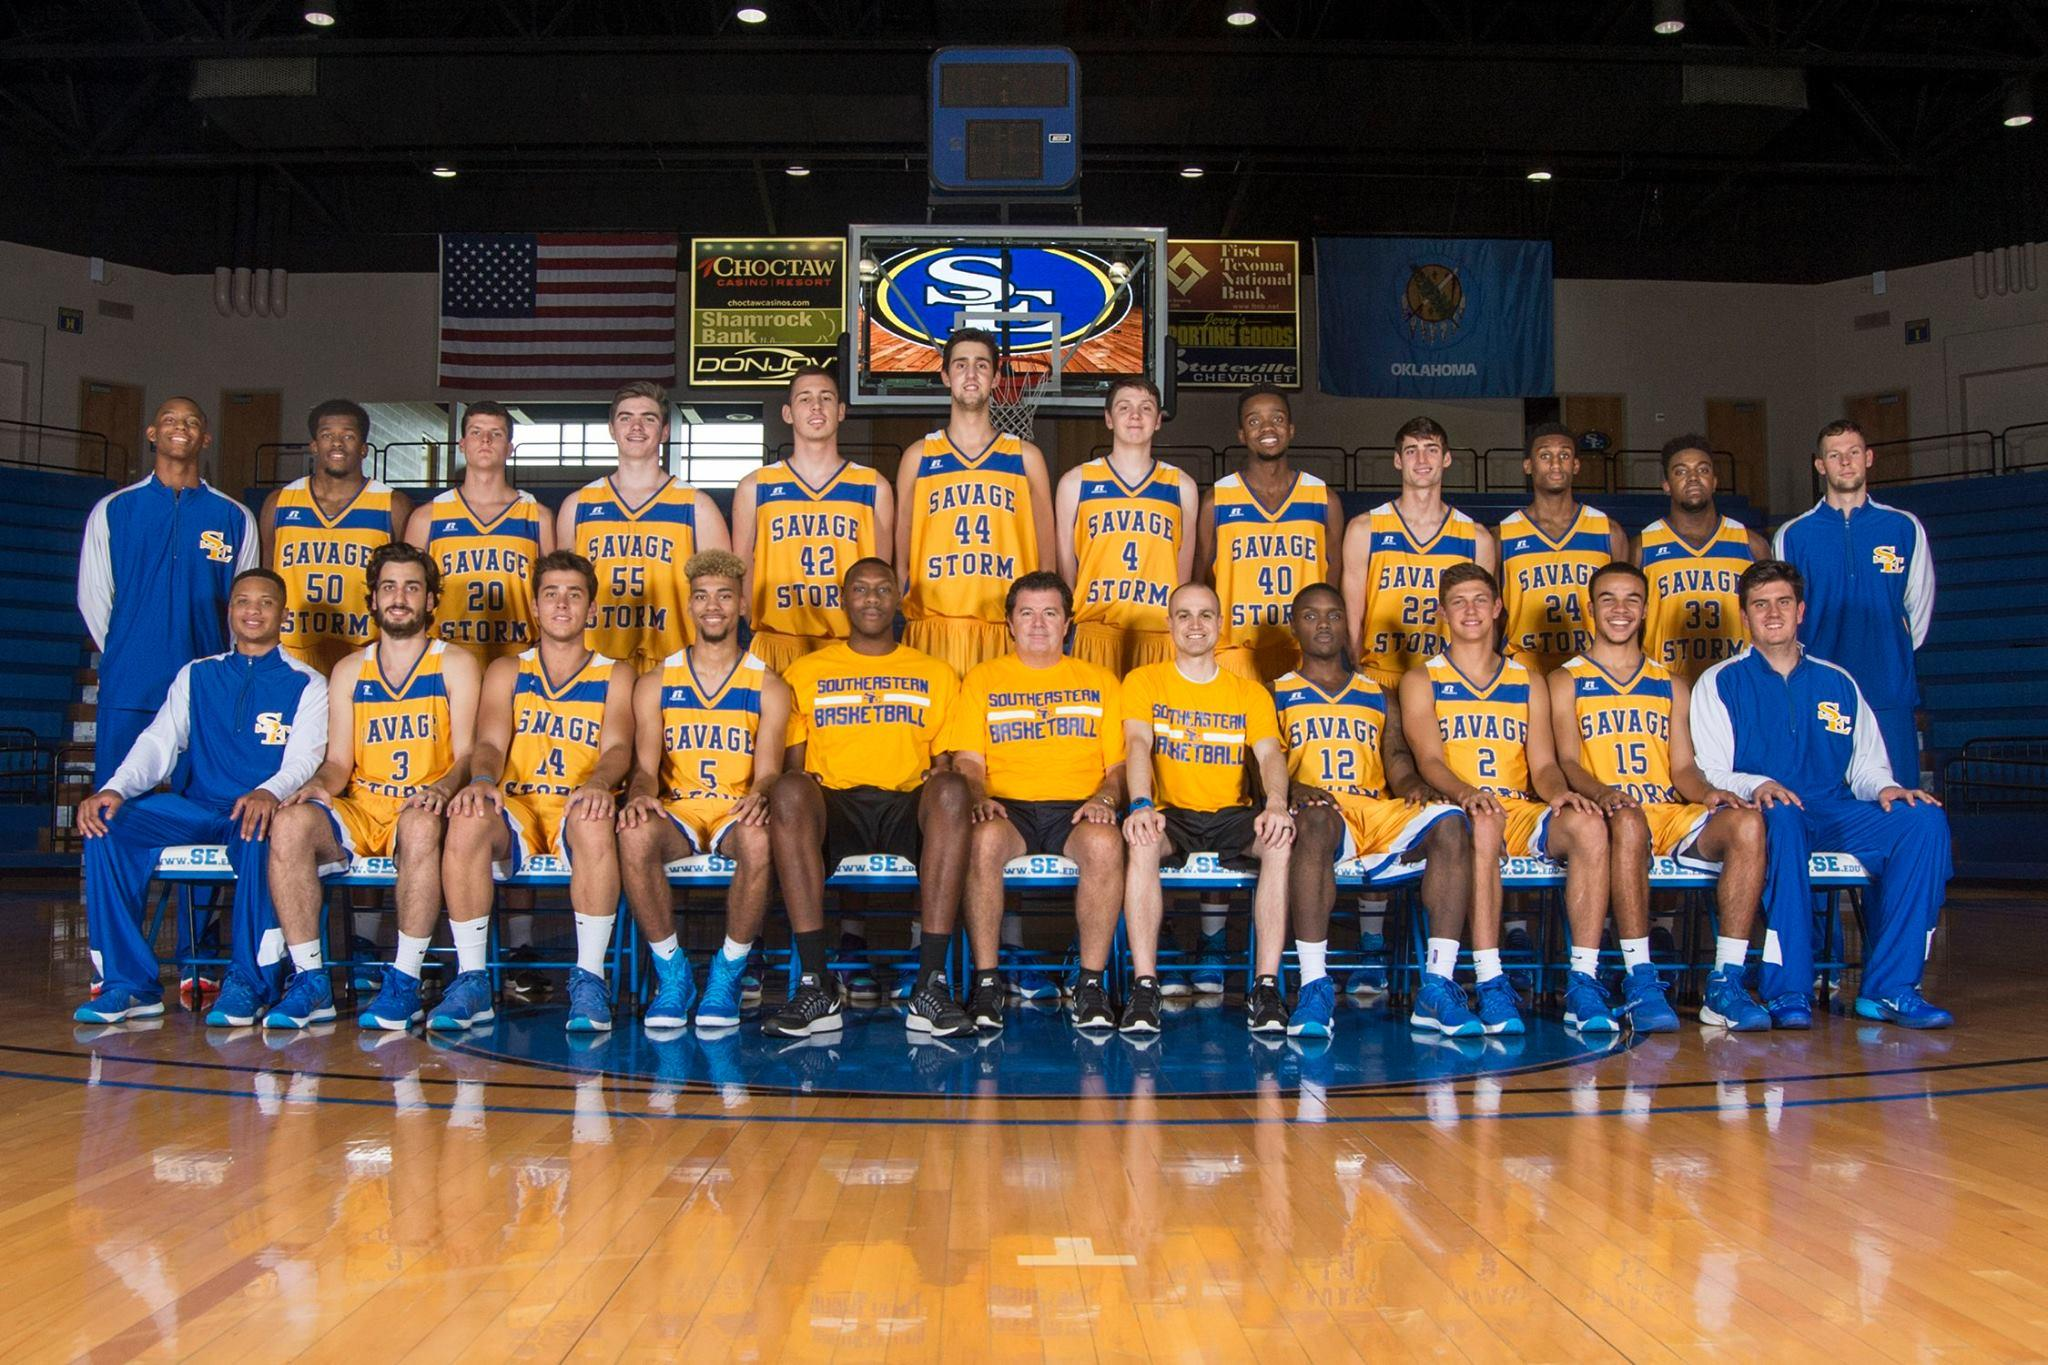 Southeastern Men's Basketball team. Photo courtesy of gosoutheastern.com